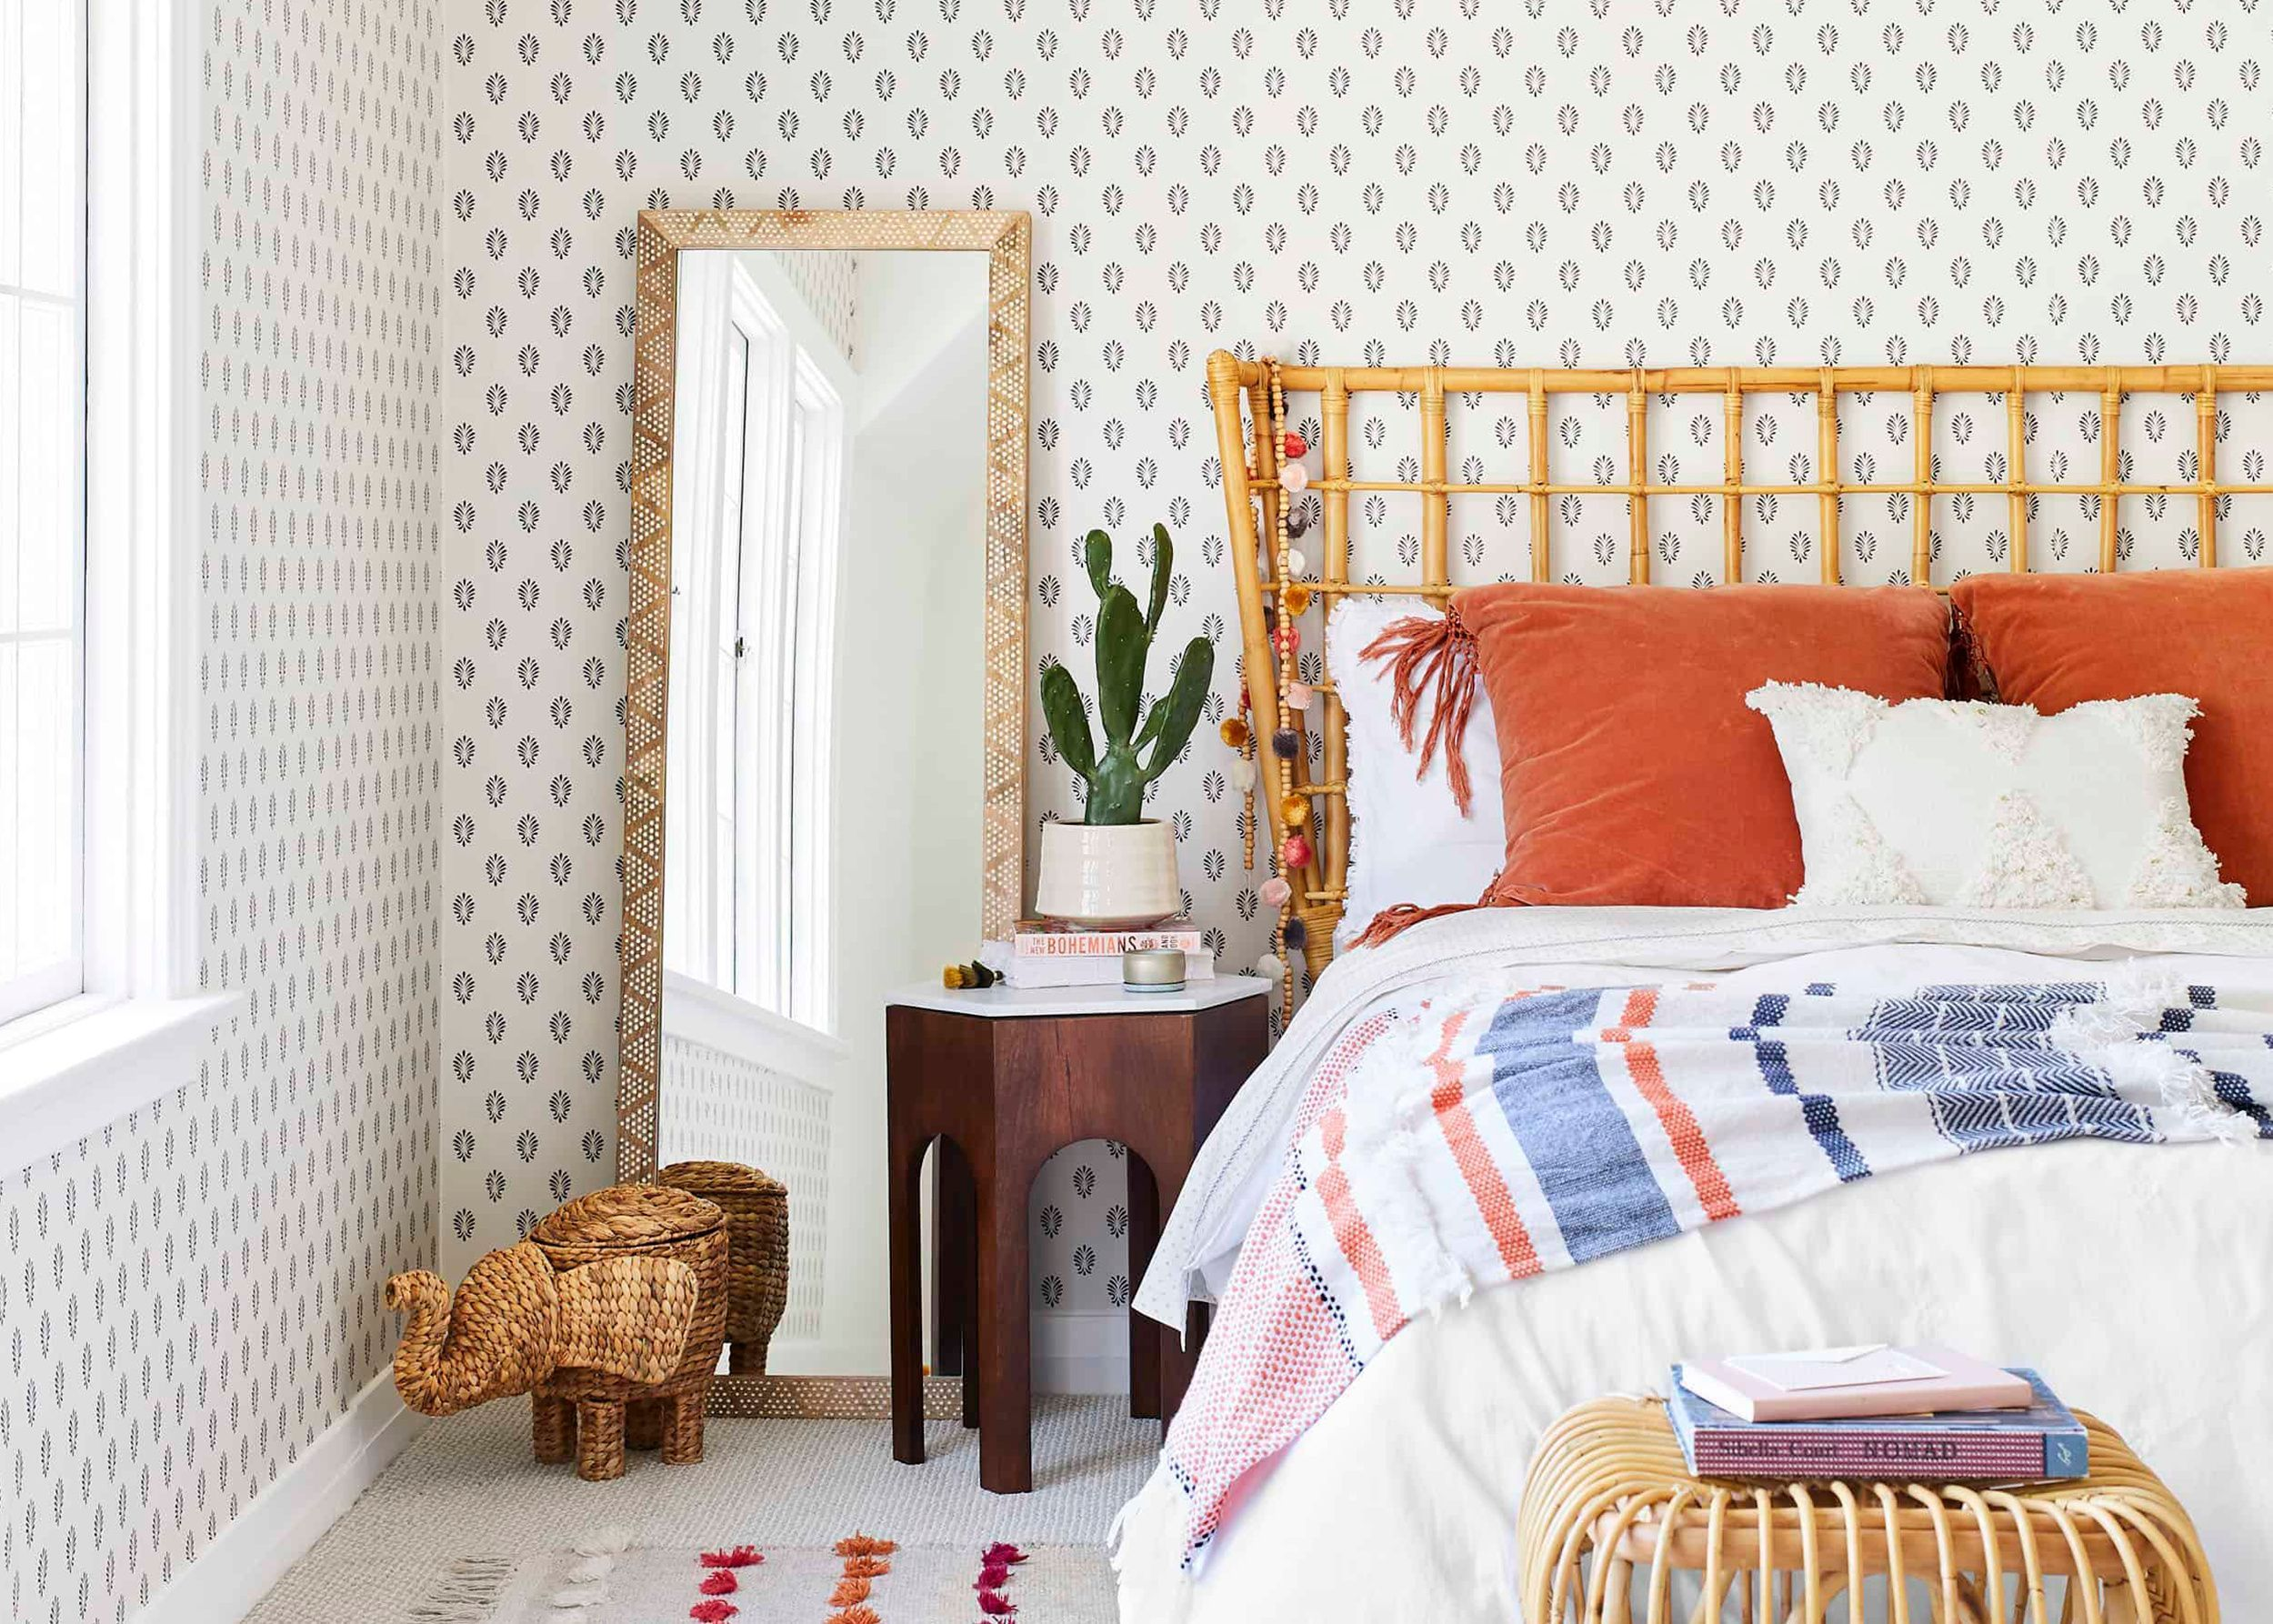 The Best Peel And Stick Wallpapers For Your Rental Apartment Or Really Any Space Help Mallory Choose One For Her Bathroom Emily Henderson Emily Henderson Living Room Guest Bedroom